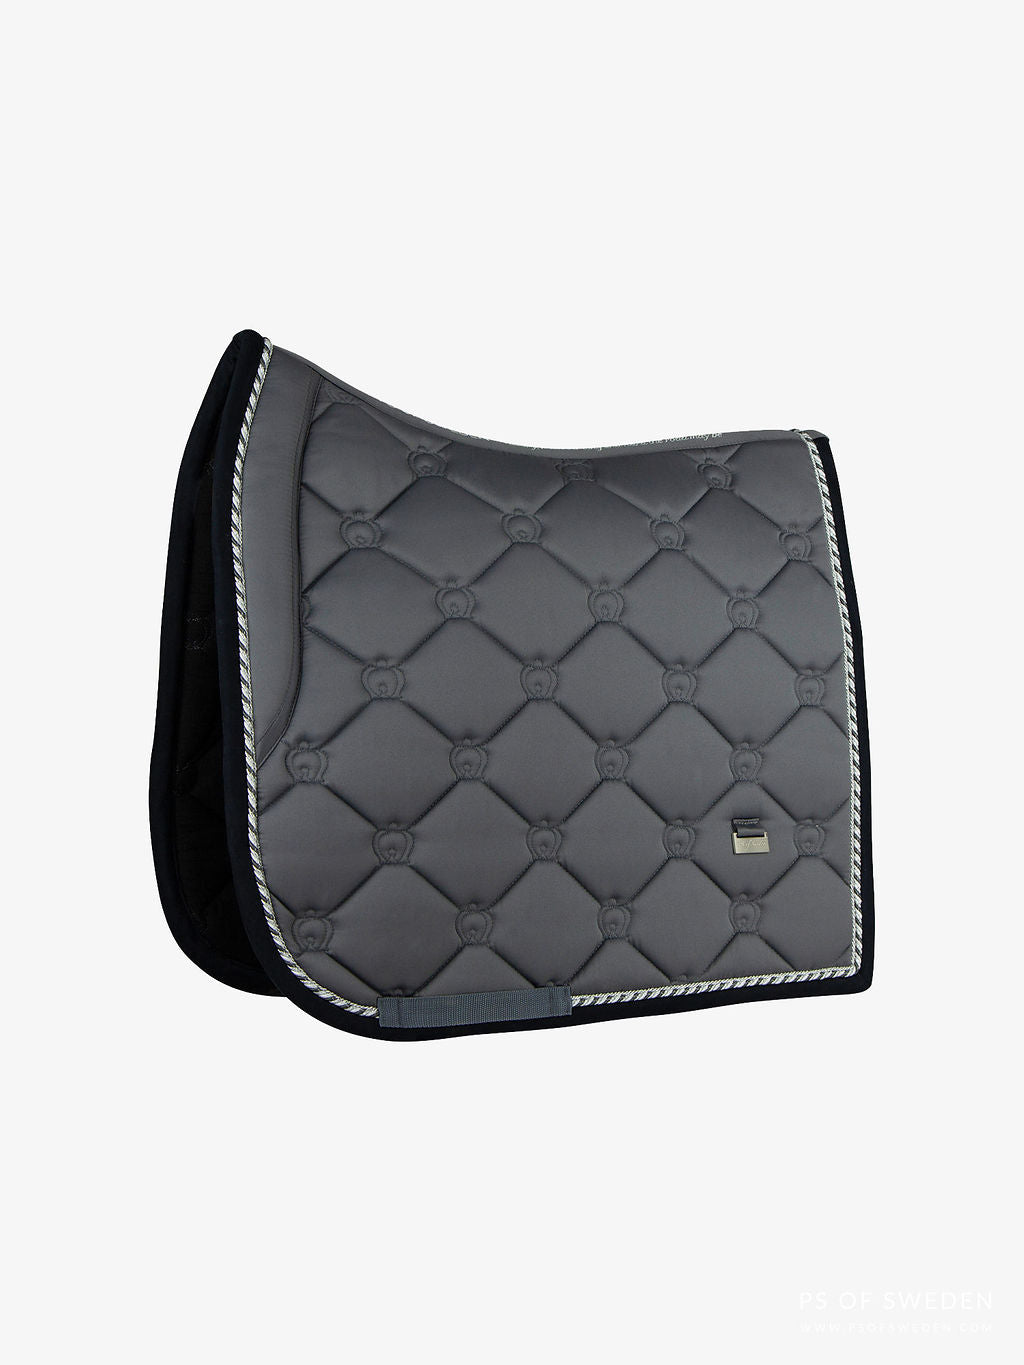 PS of Sweden AW20 Limited Edition Monogram Saddle Pad - ANTHRACITE - Divine Equestrian